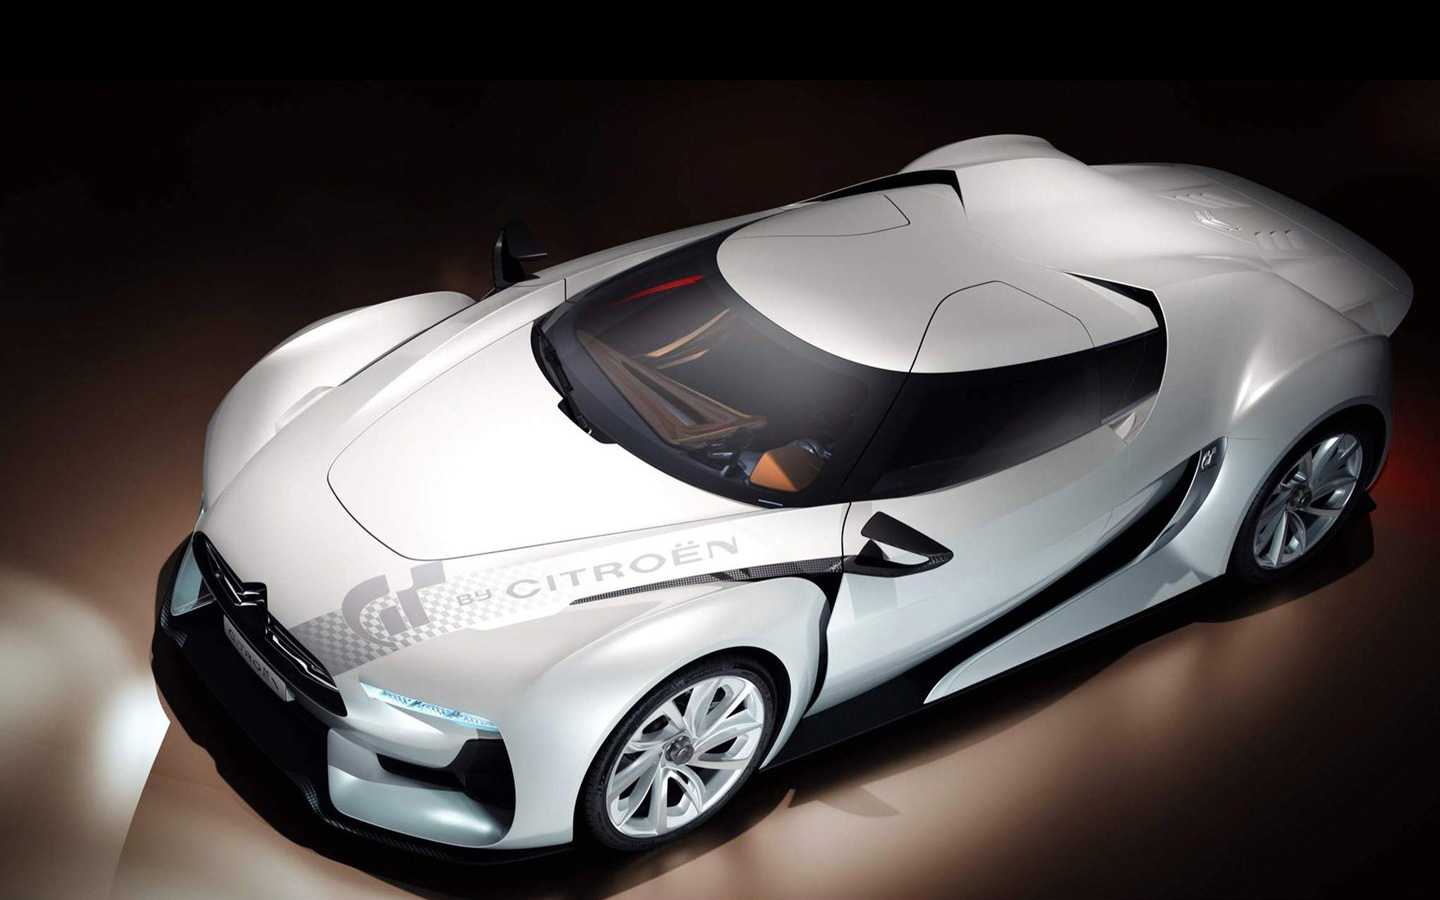 Citroen Supercar Concept 2 199.06 Kb